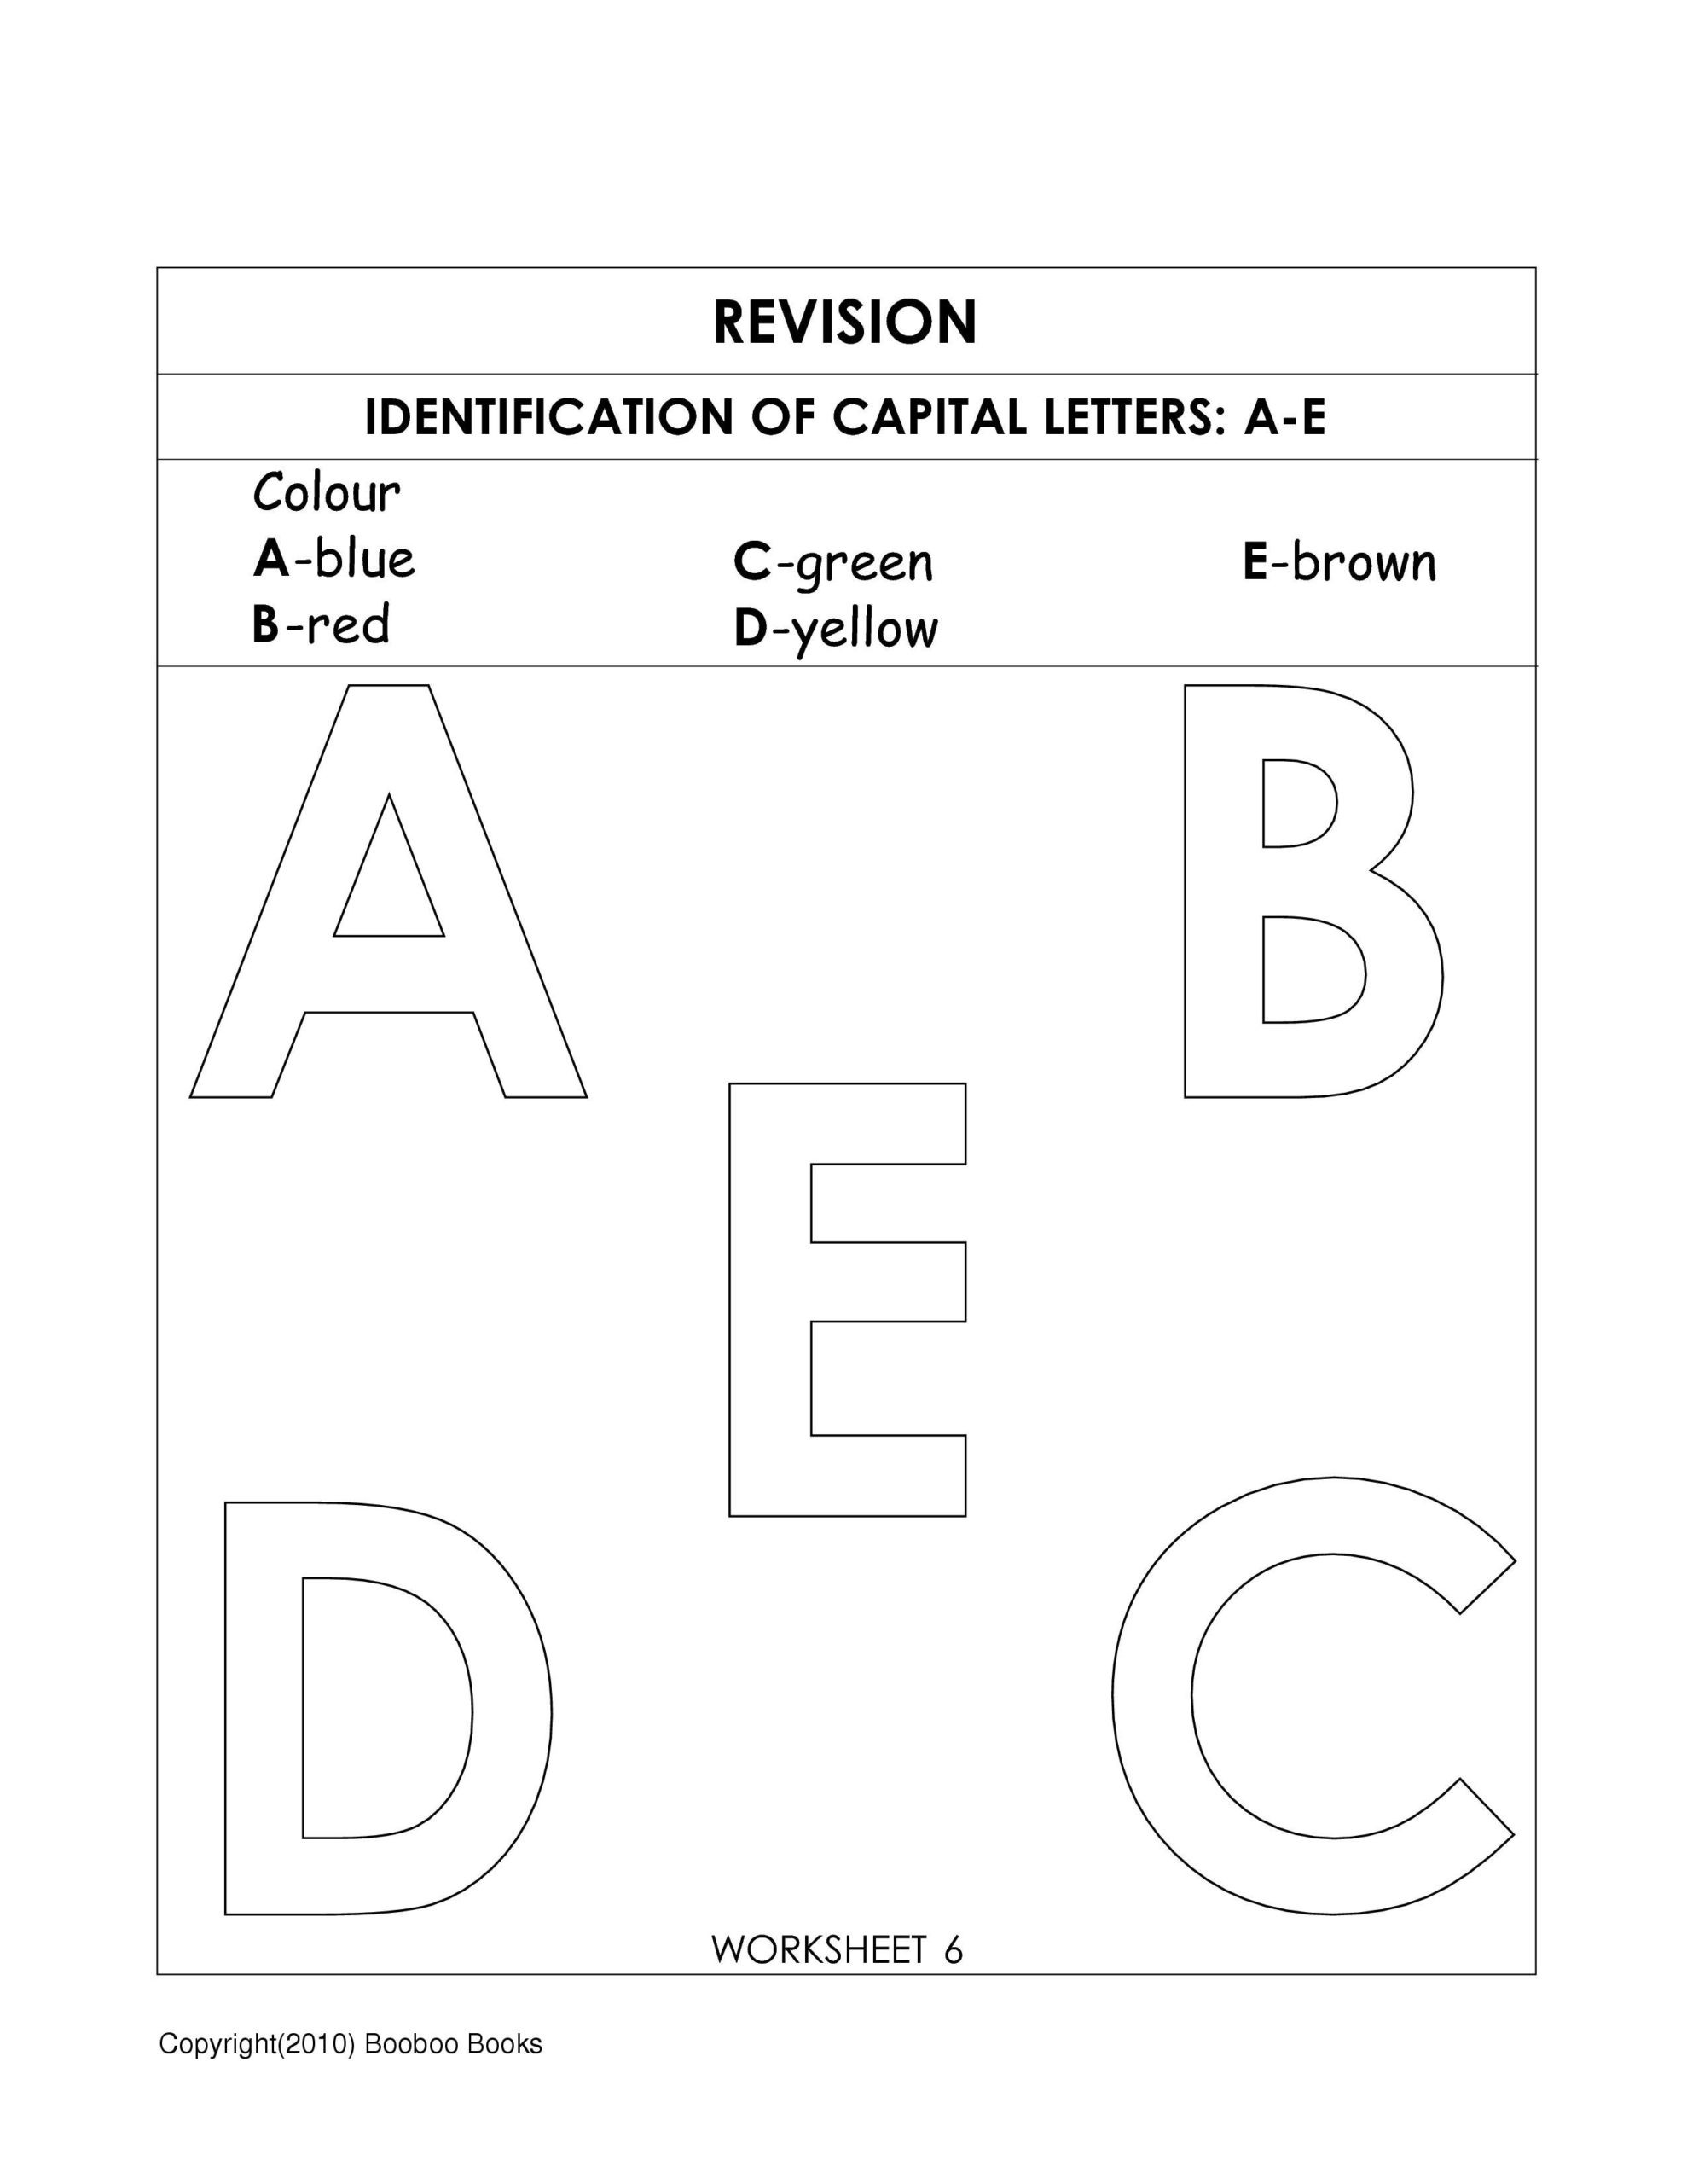 Alphabet Recognition Worksheets for Preschool Alphabet Worksheets Kindergarten Student Clip Art Black and